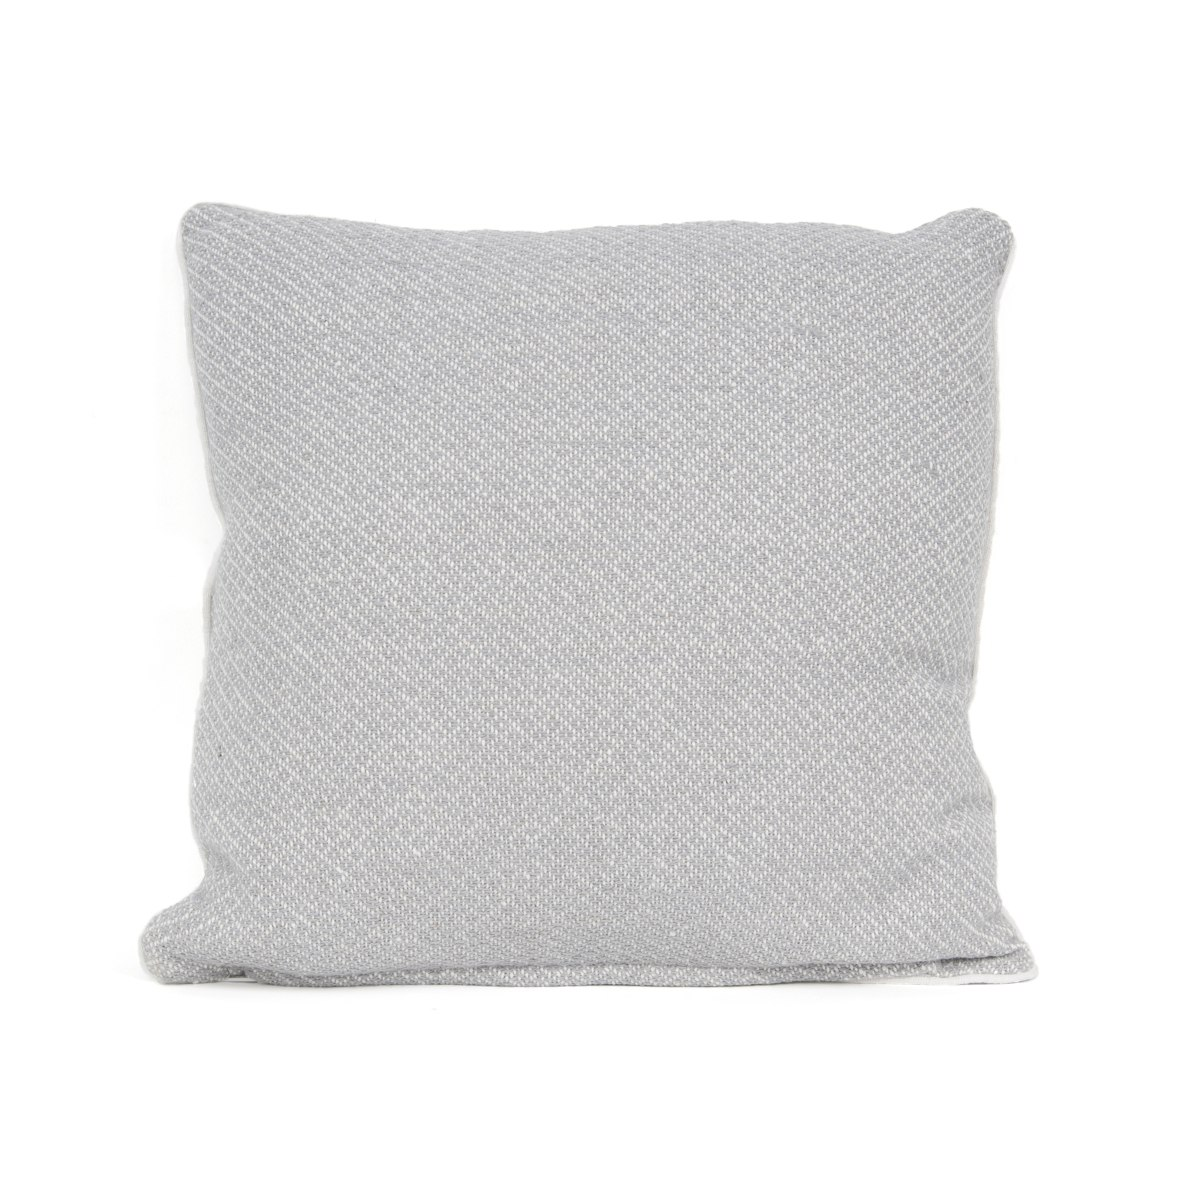 Cushion Cozy grey